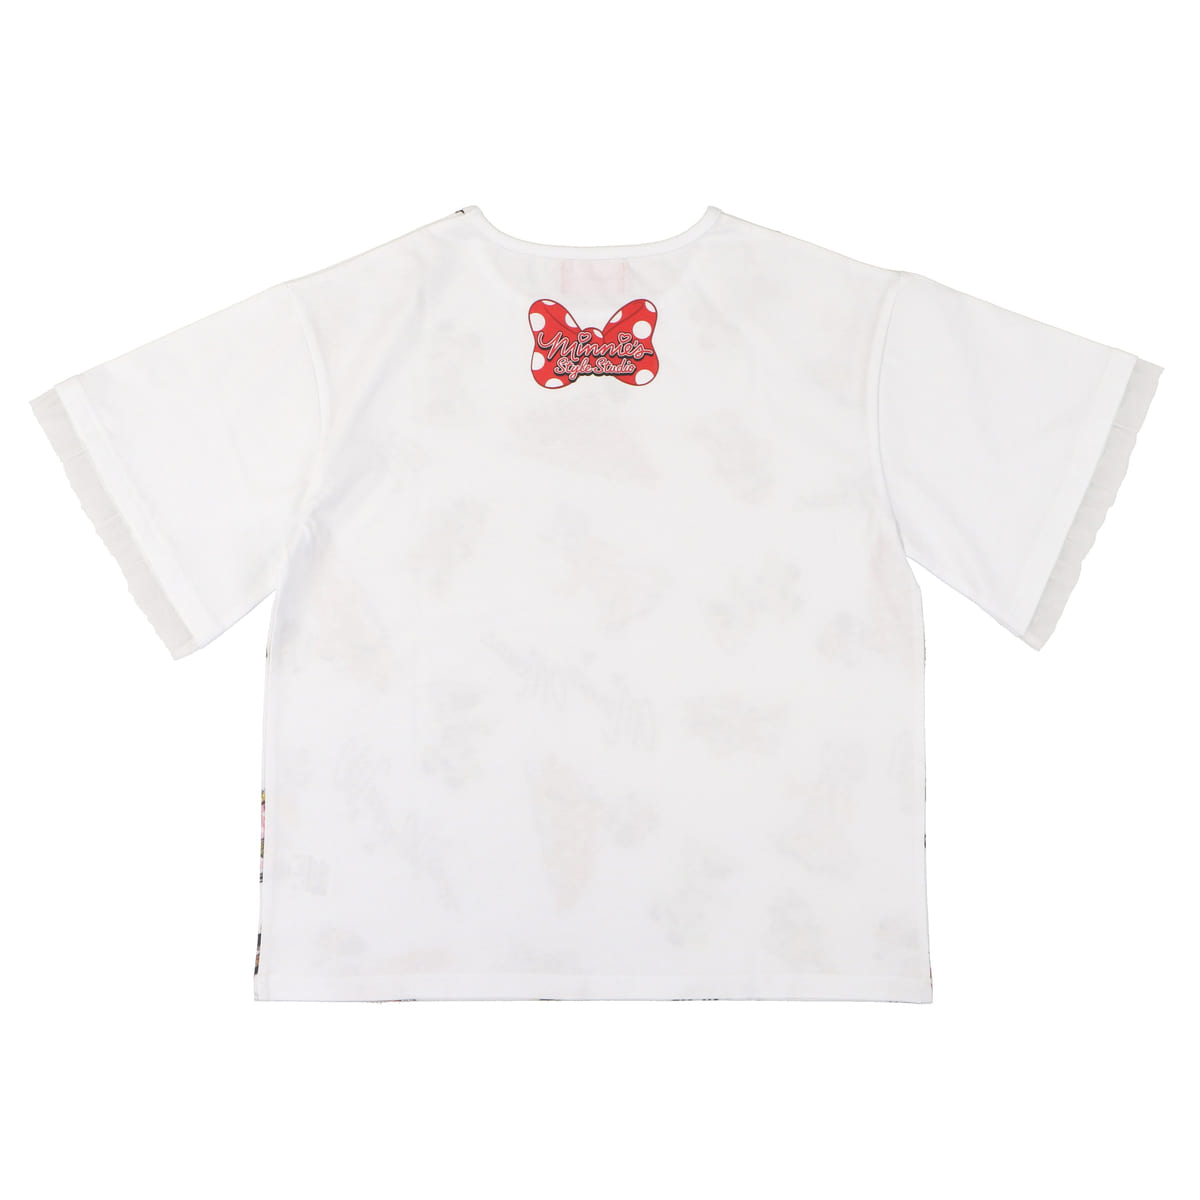 Tシャツ 総柄2